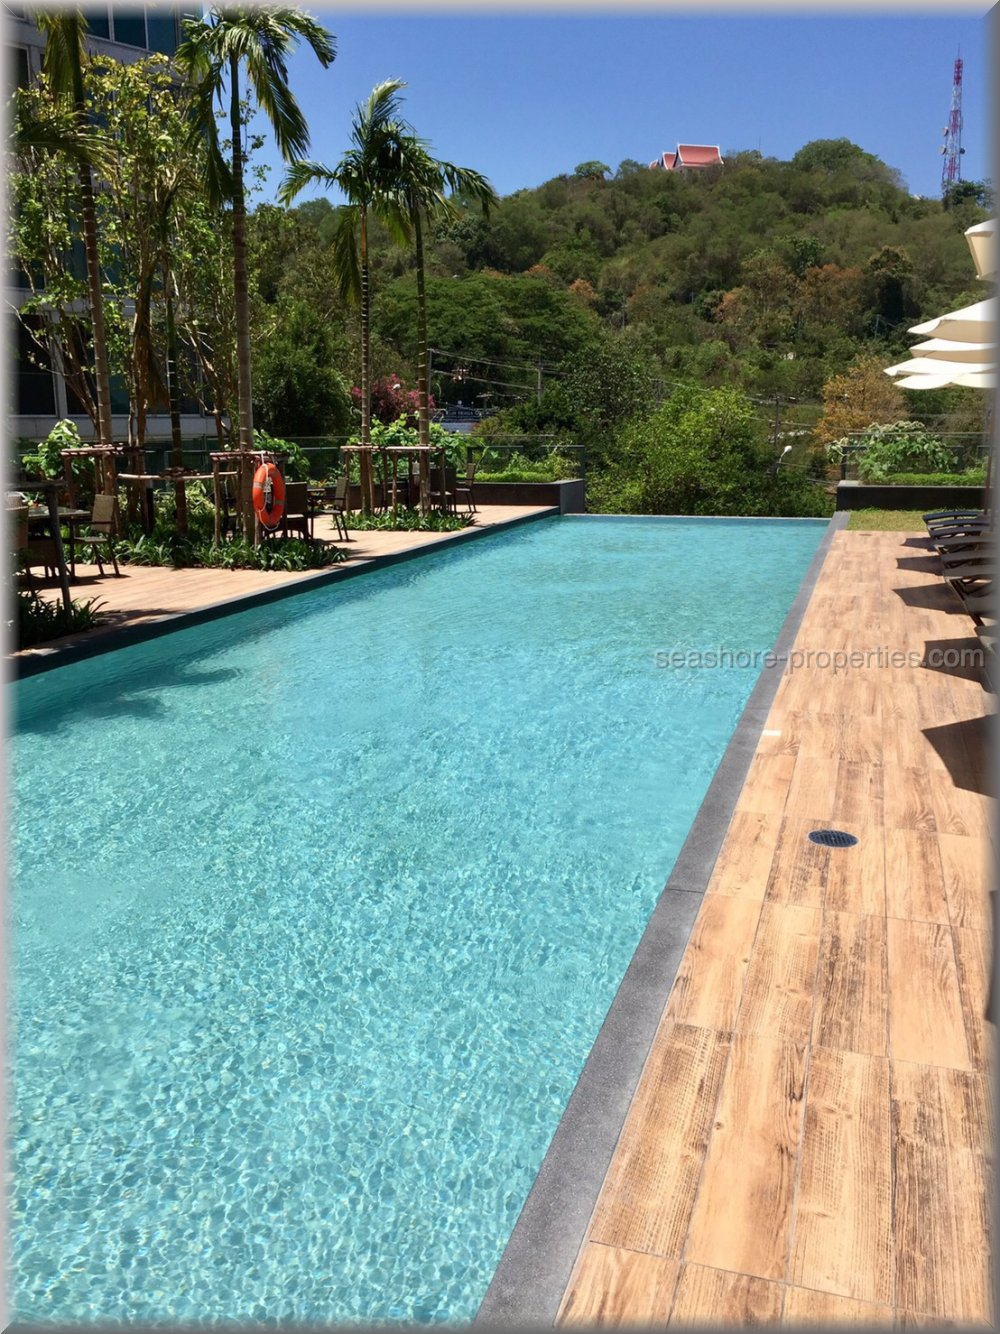 pic-8-Seashore Properties (Thailand) Co. Ltd. unixx condo   for sale in Pratumnak Pattaya